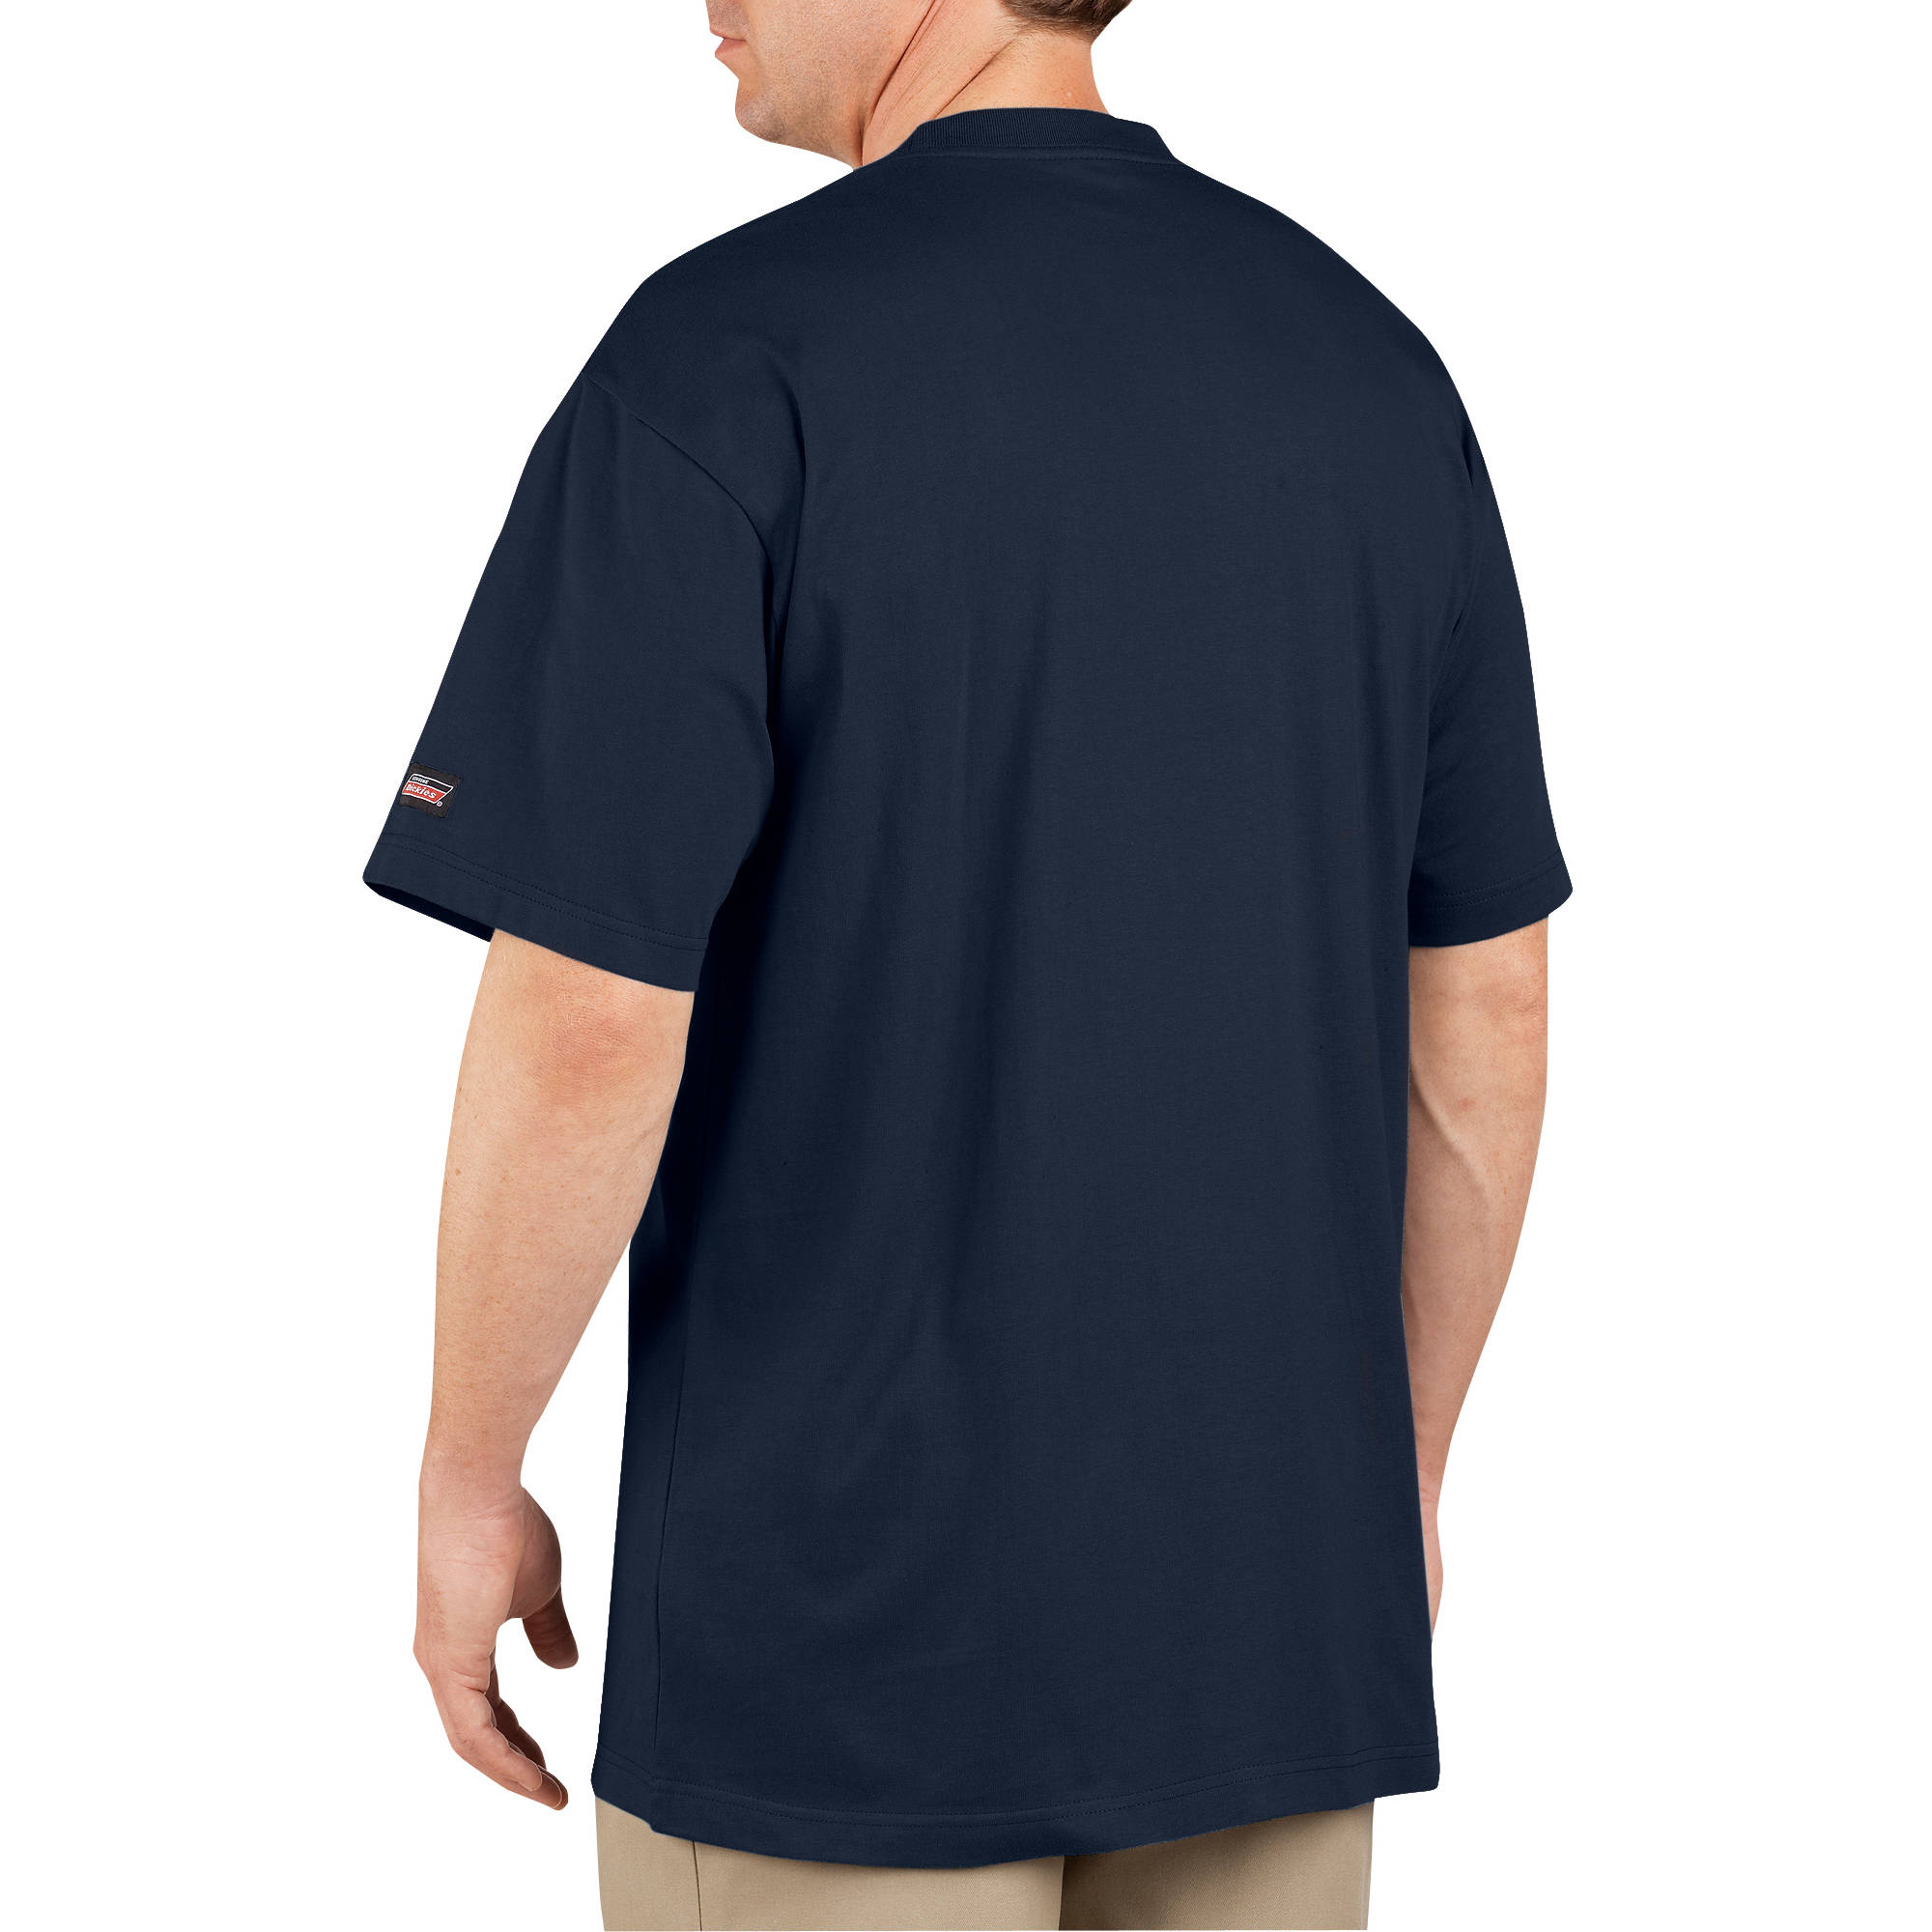 Design t shirt with pocket - Genuine Dickies 407 Heavy Weight Short Sleeve Pocket Tees 2 Pack Walmart Com